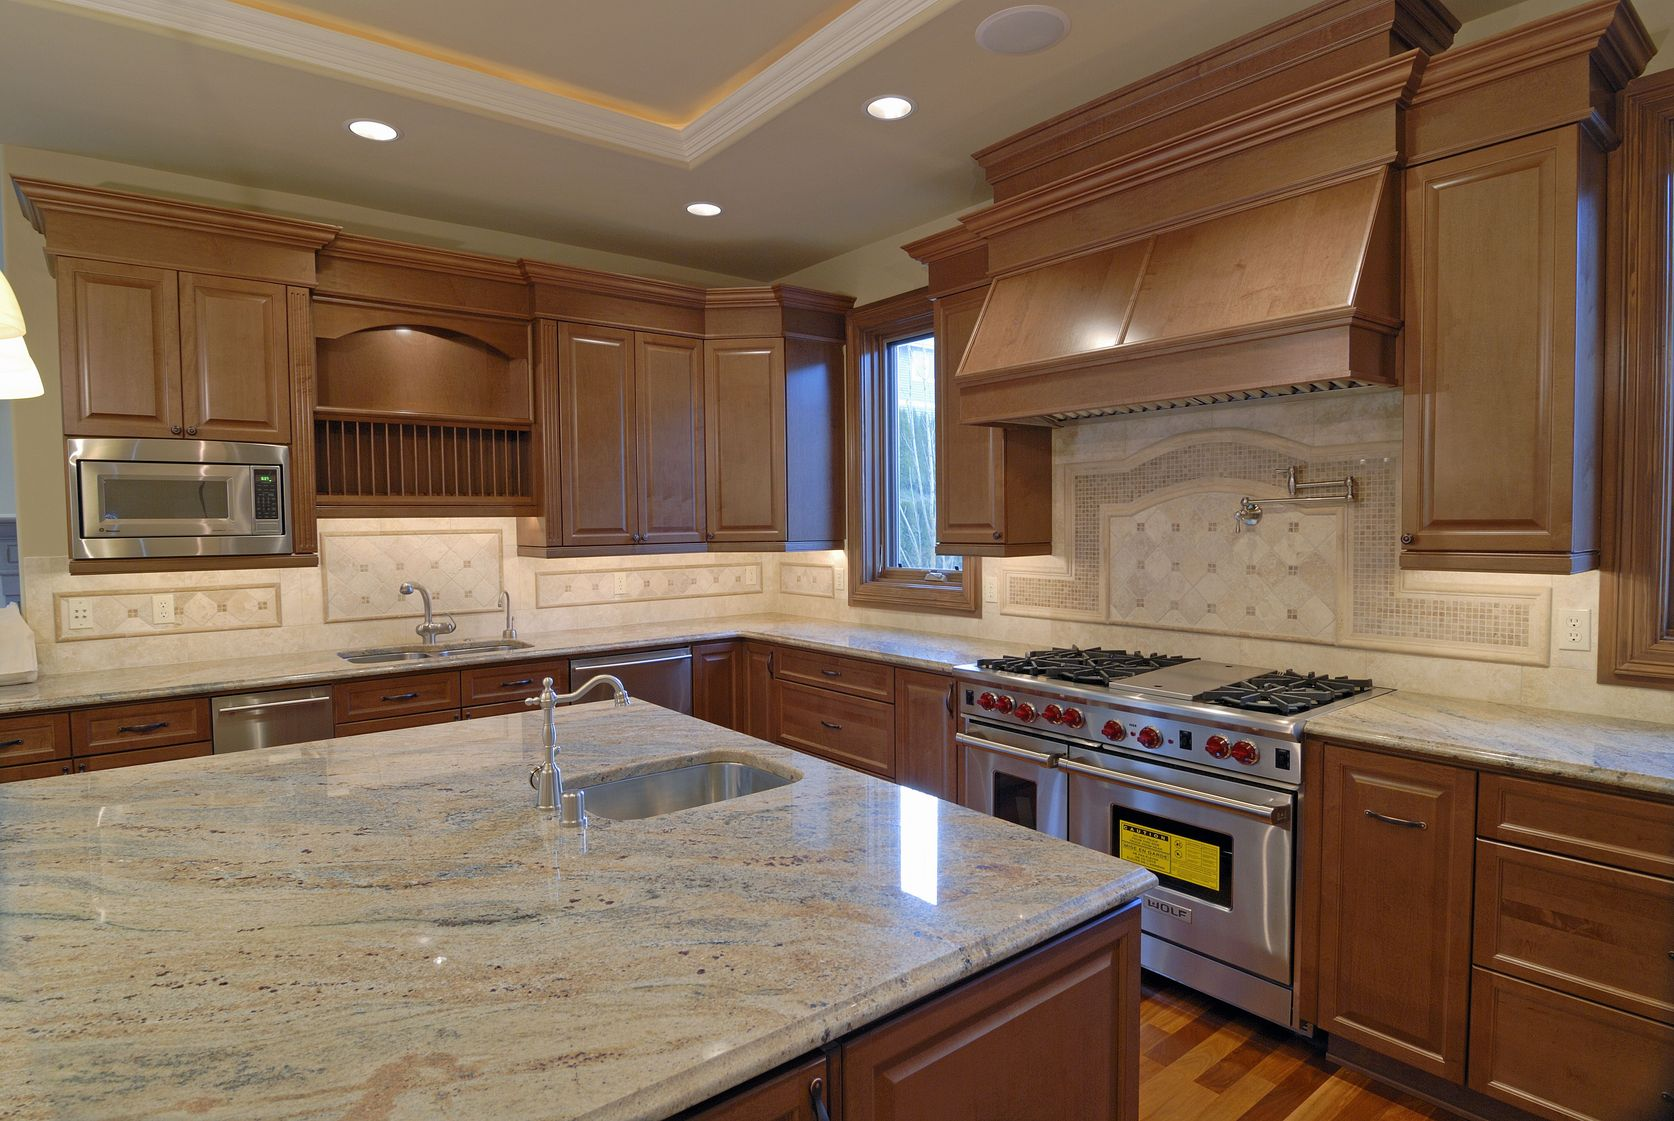 Kitchen Countertops Of Kitchen Remodeling Tips How To Design A Kitchen With